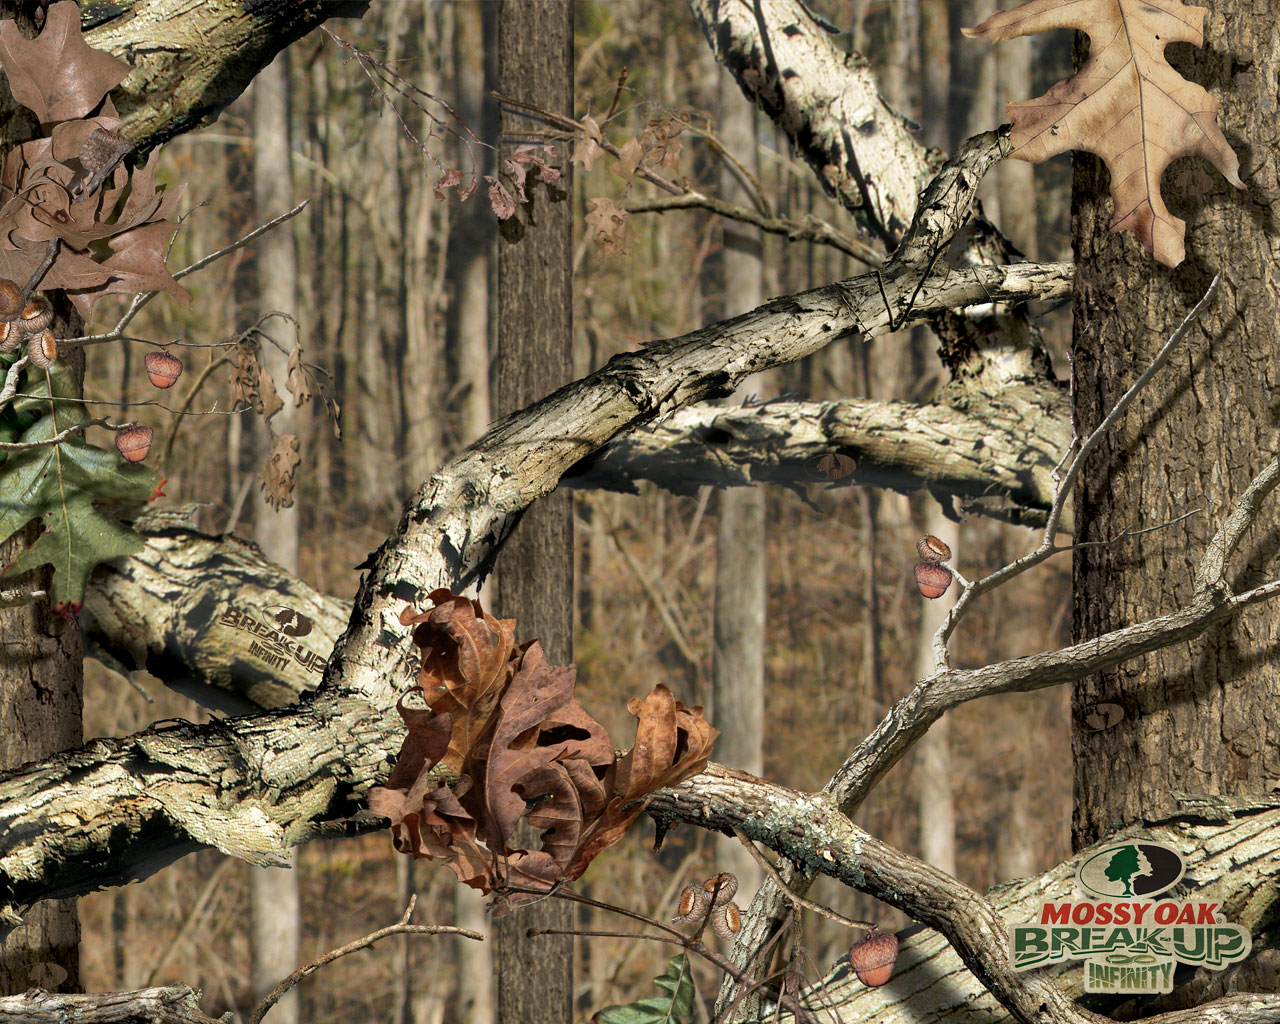 Mossy Oak Breakup Camo Wallpaper Free Mossy Oak Wallpap...